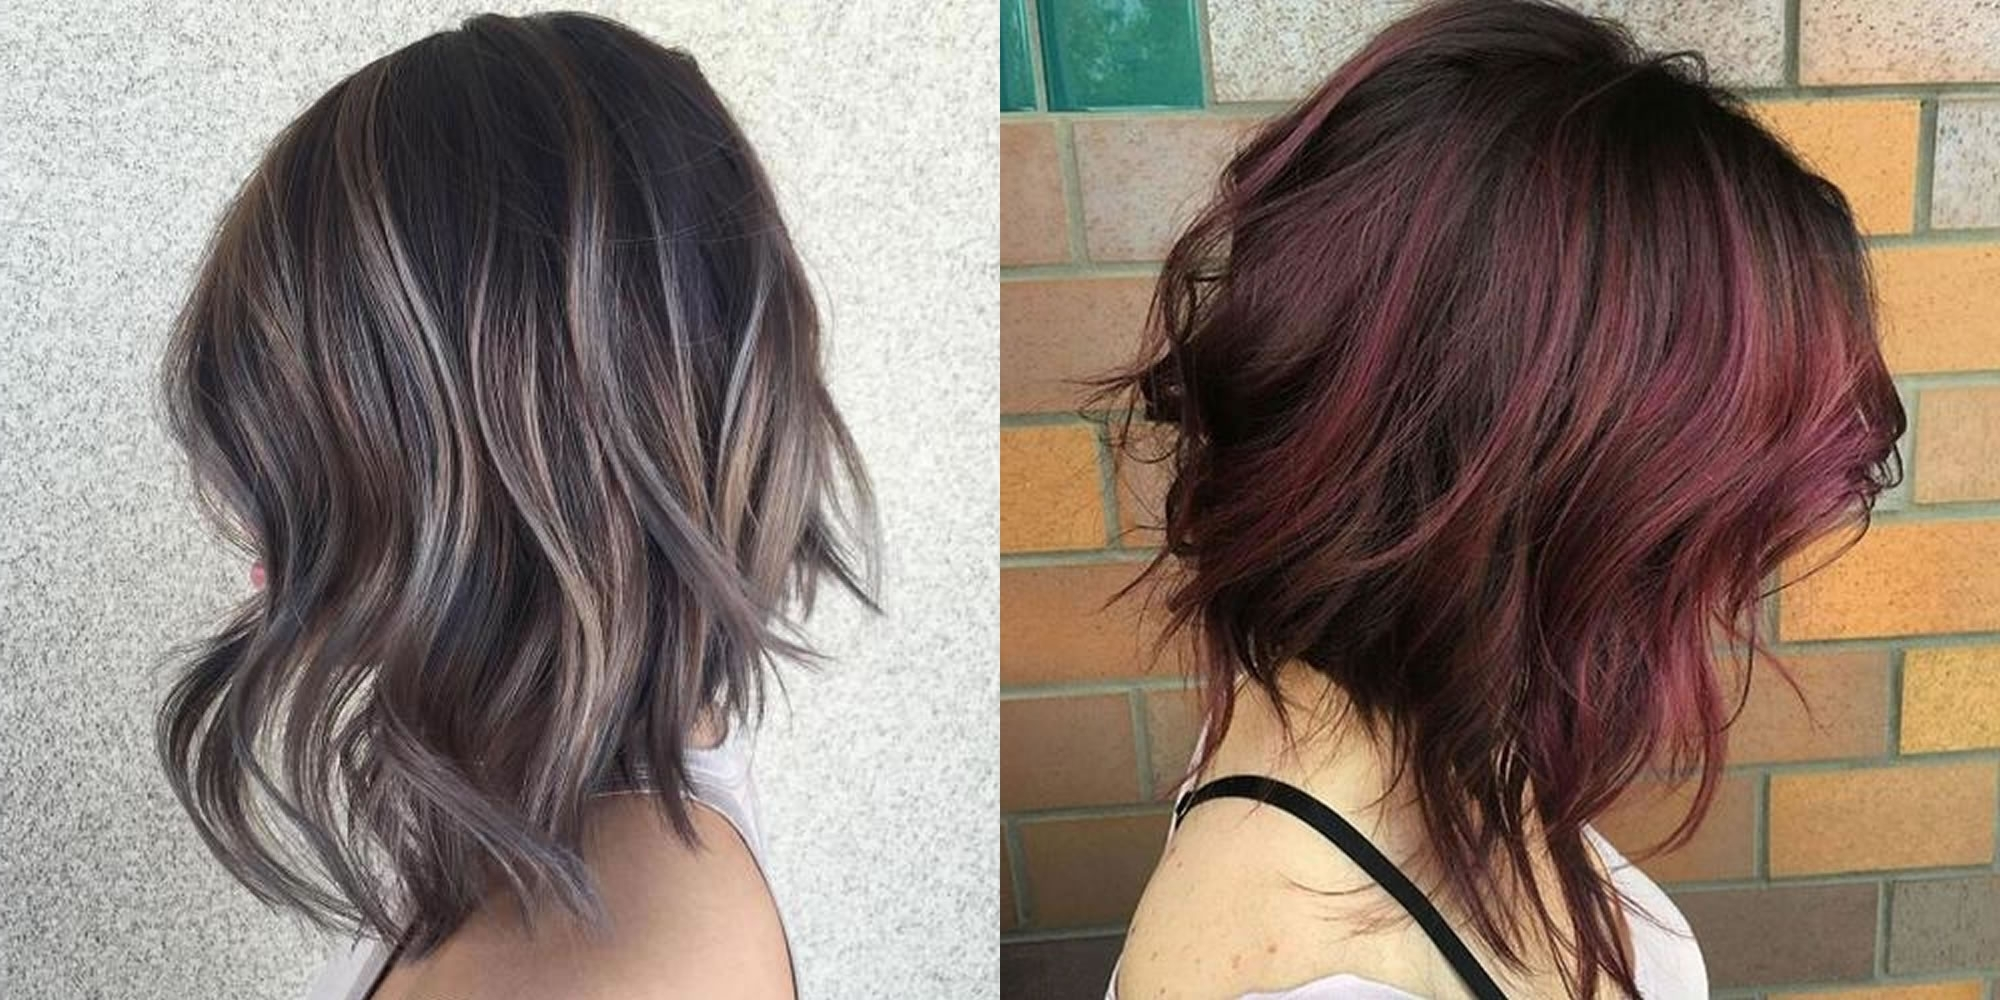 Popular Shaggy Pixie Hairstyles With Balayage Highlights Throughout The Best 50 Balayage Bob Hairstyles (short+long) & Highlights – Page (View 12 of 20)